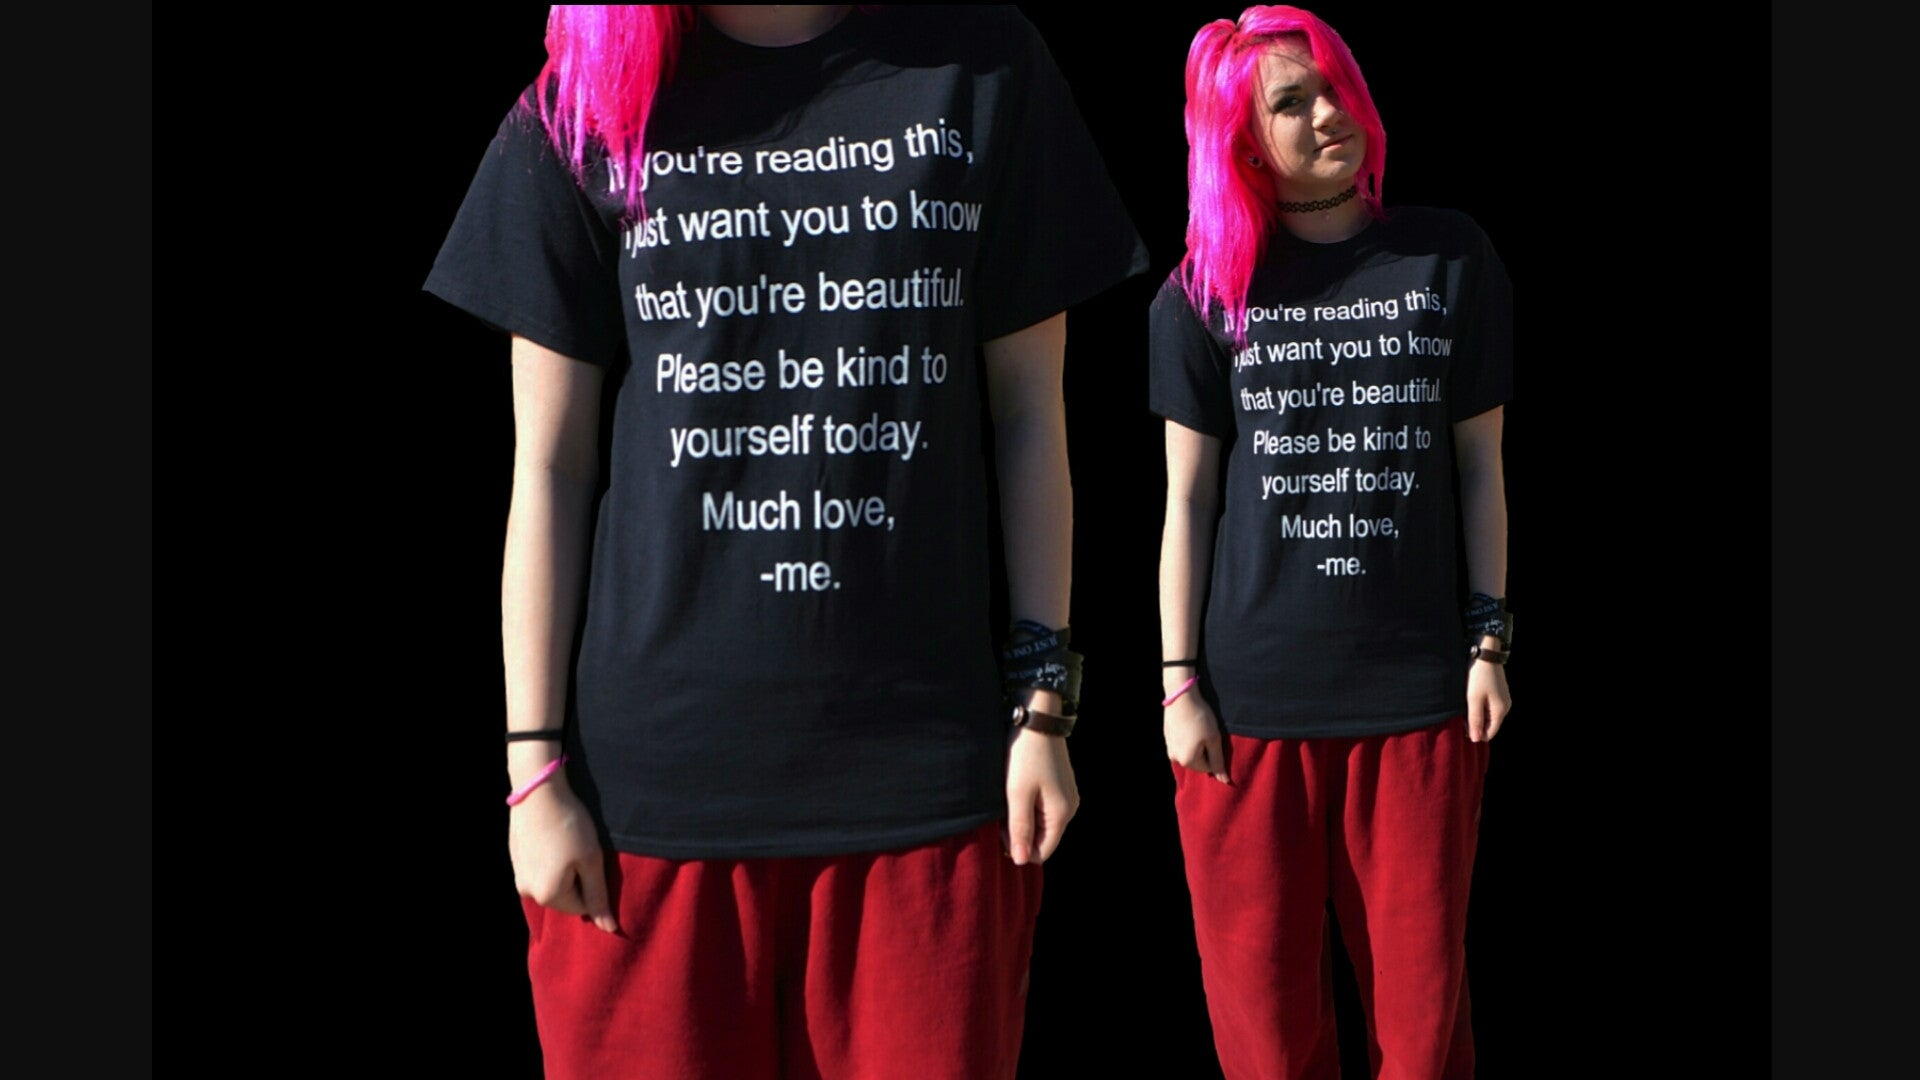 Self Harm Prevention/ Self Love Awareness T-shirt ♥ - Underlying Beauty - 2